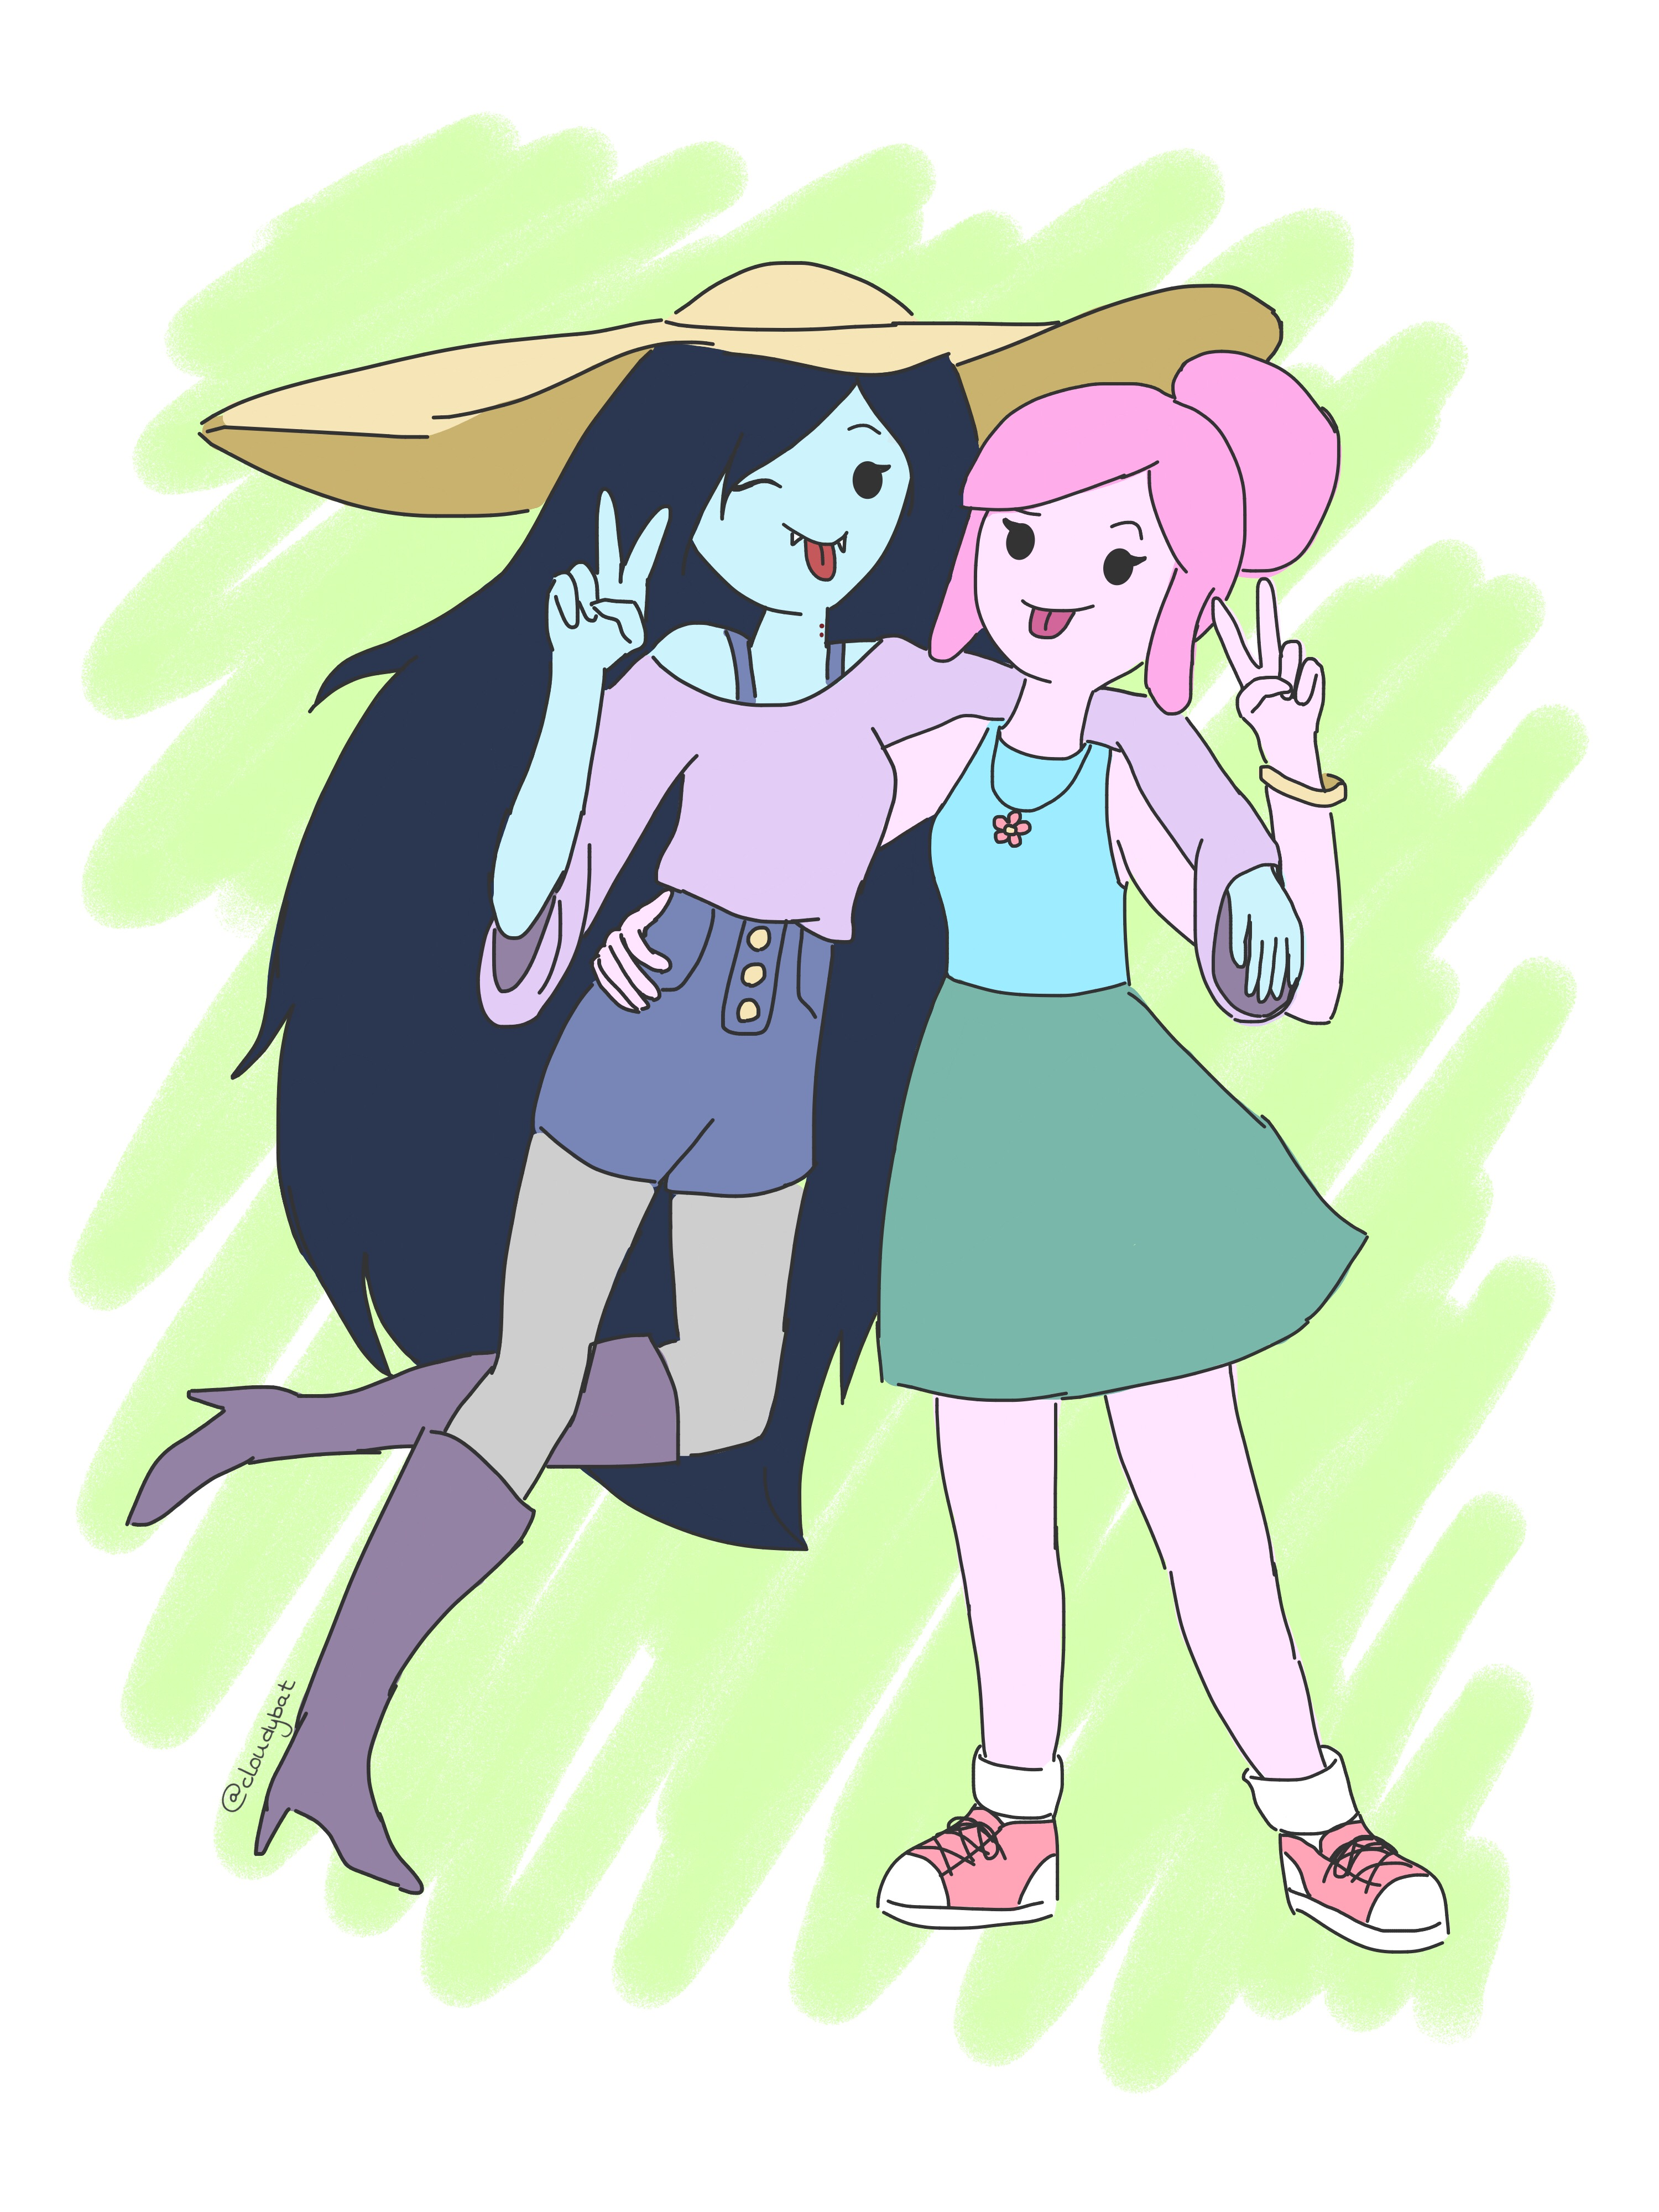 Awesome Marceline The Vampire Queen Images On Picsart Aesthetic Anime Jpg 3000x4000